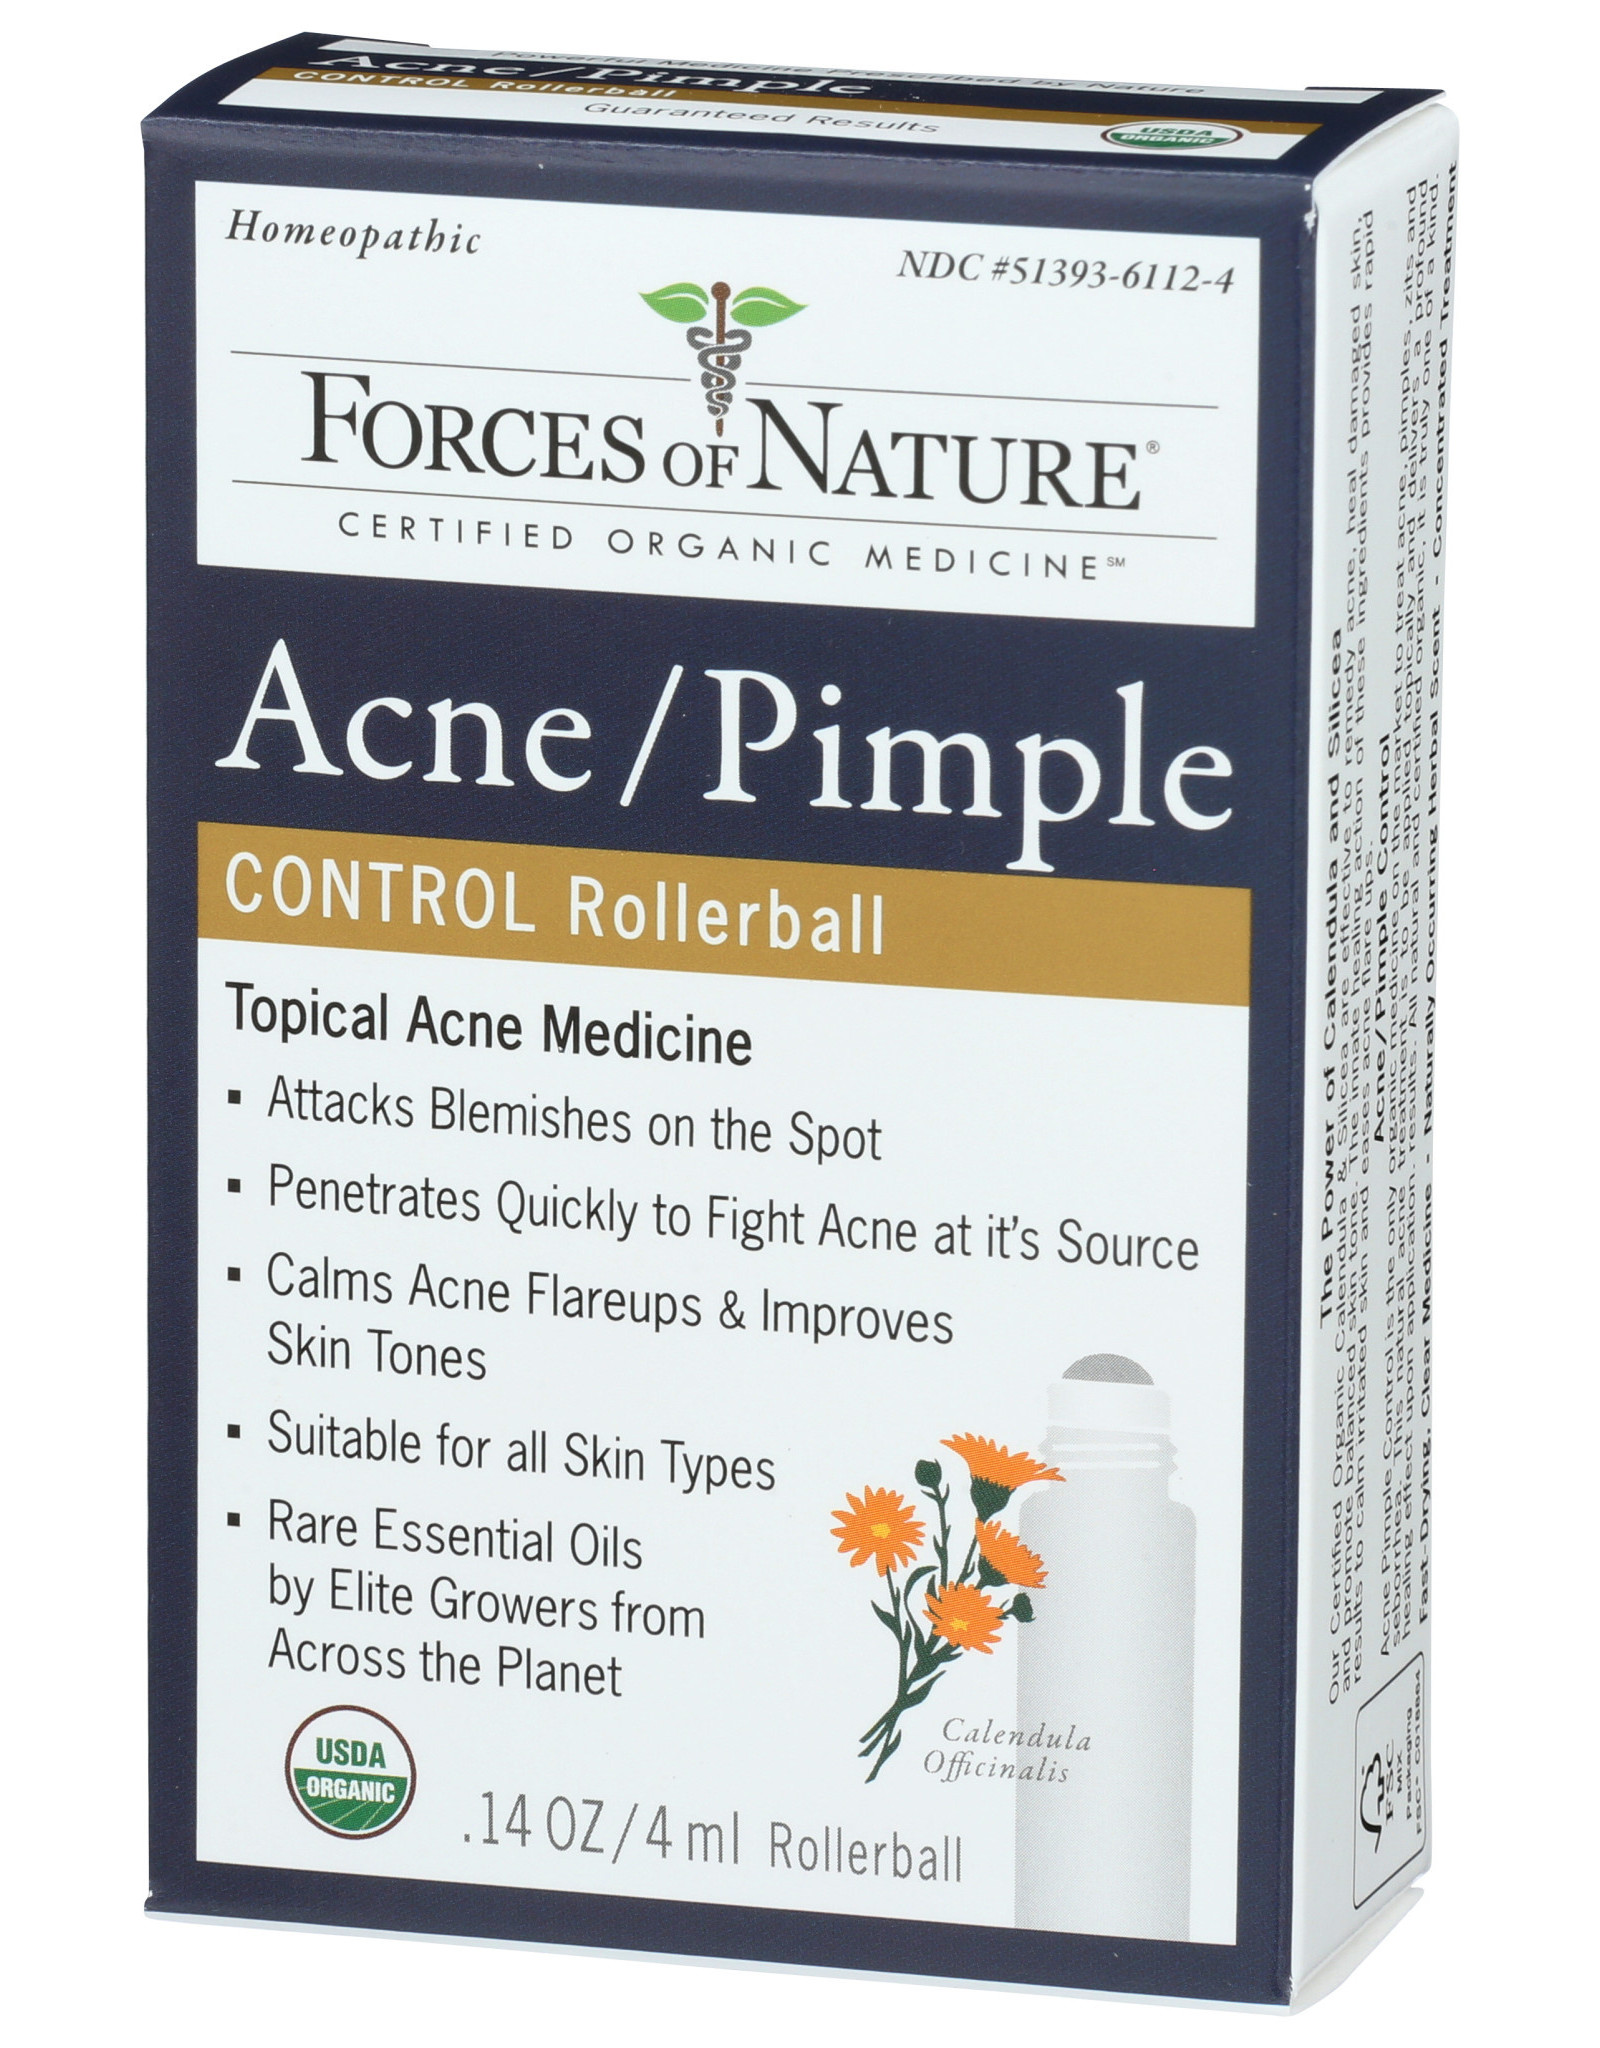 FORCES OF NATURE FORCES OF NATURE ACNE/PIMPLE ROLLERBALL APPLICATOR, 0.14 OZ.